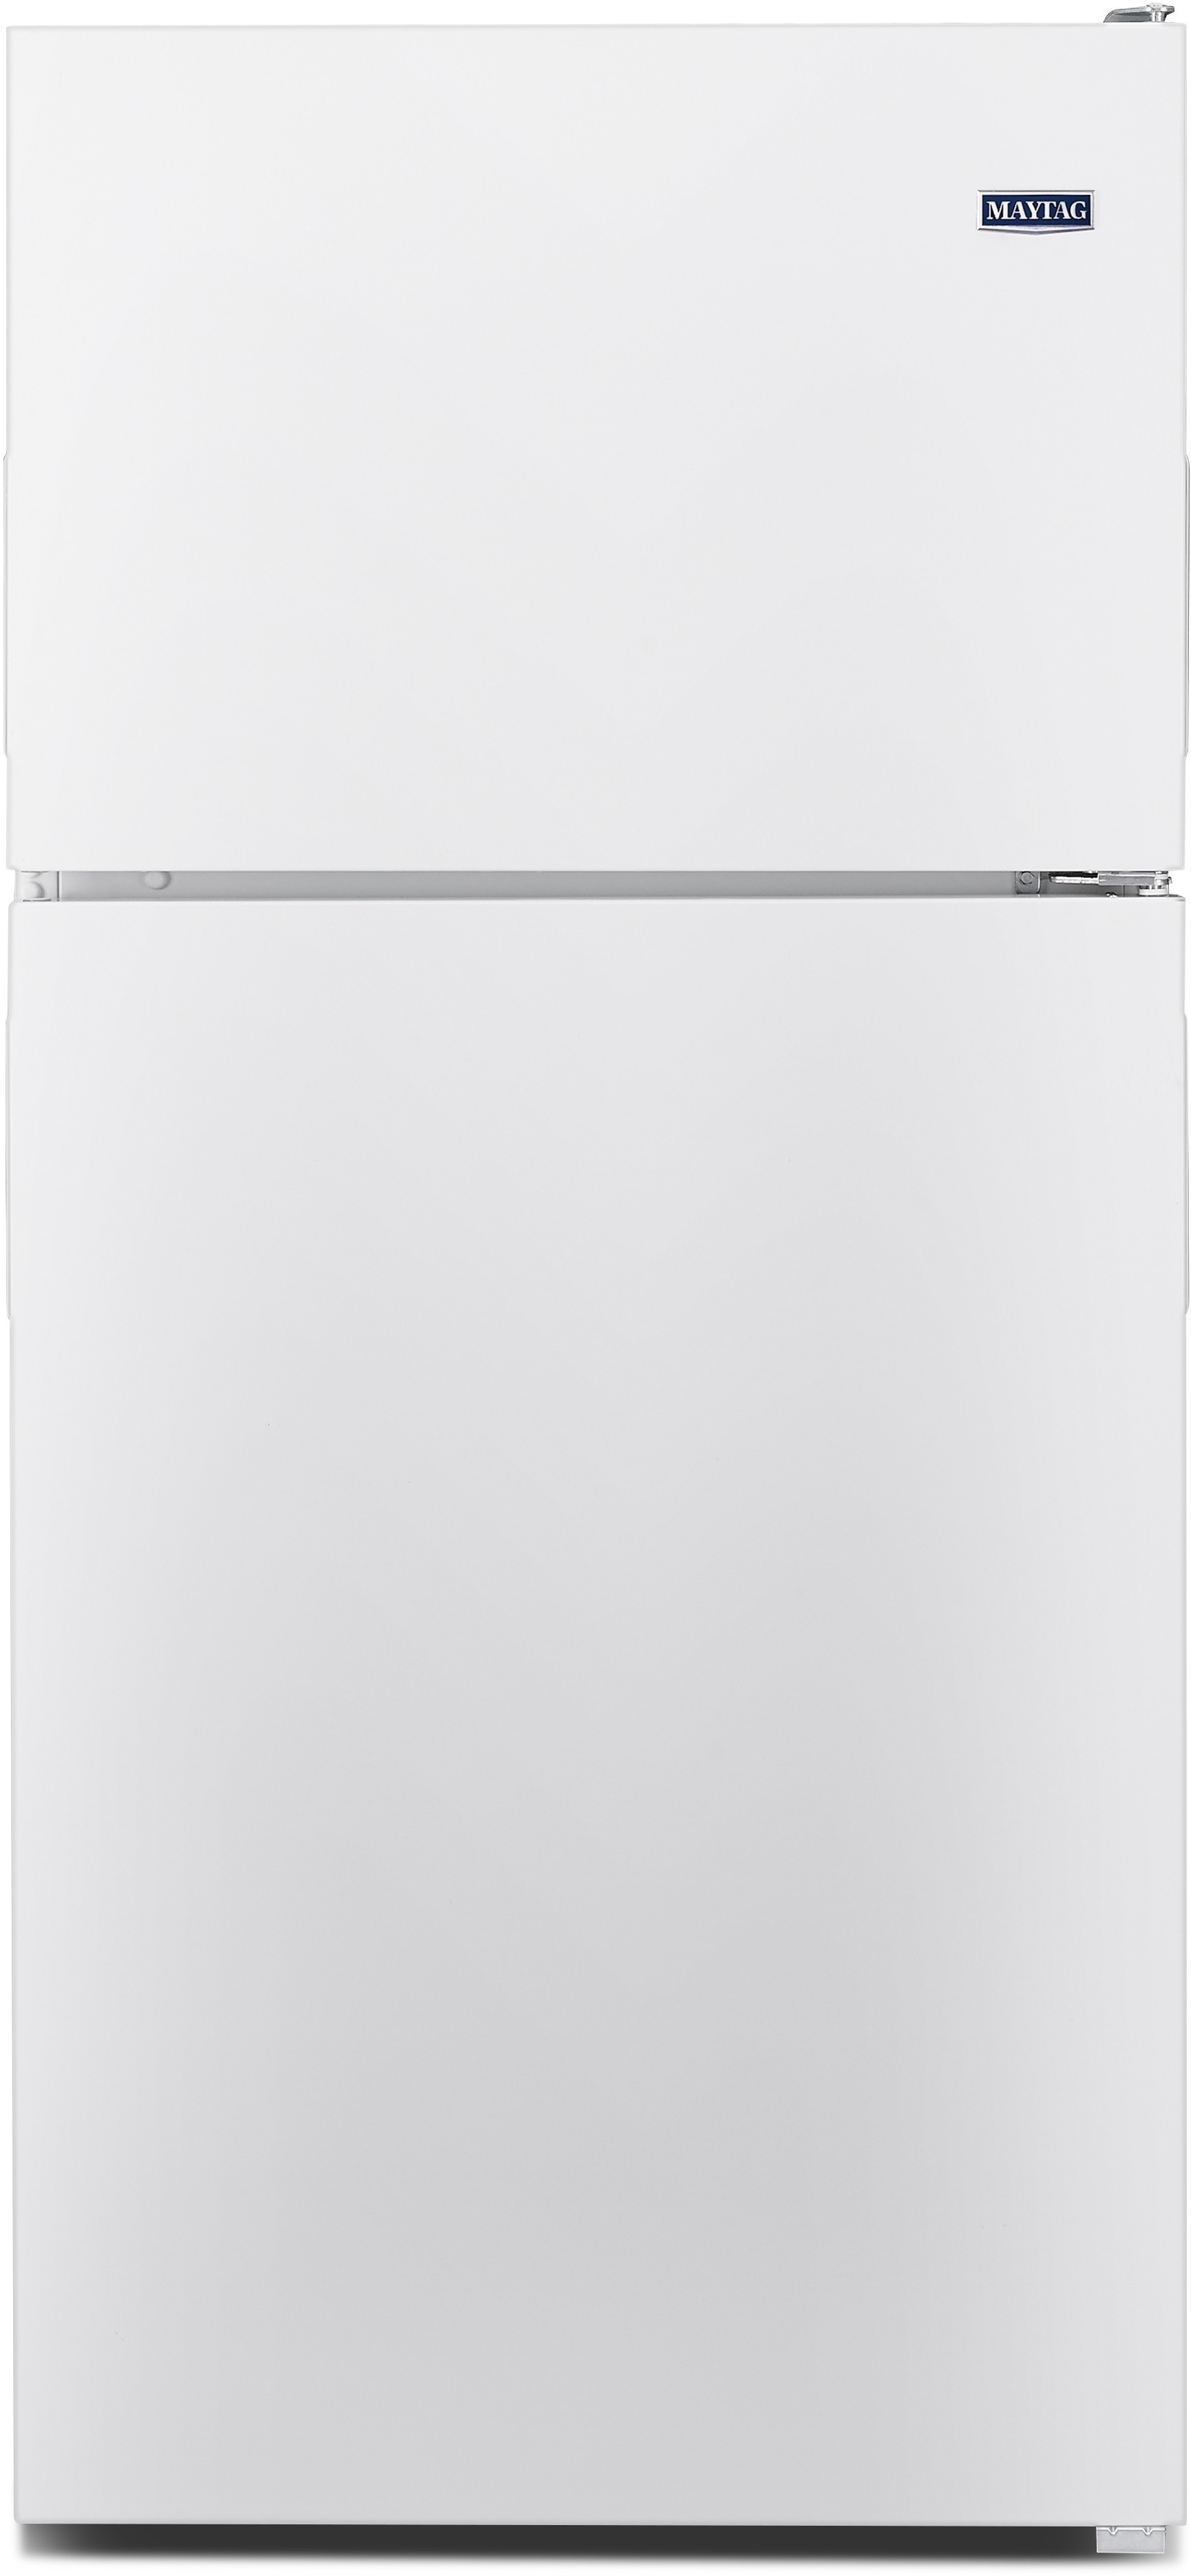 Maytag Mrt118fffh 30 Inch Top Freezer Refrigerator With 18 15 Cu Ft Capacity Adjustable Glass Shelves Gallon Door Storage 2 Humidity Controlled Crisper Drawers Powercold Feature Brightseries Led Up Front Electronic Controls And Ada Compliant